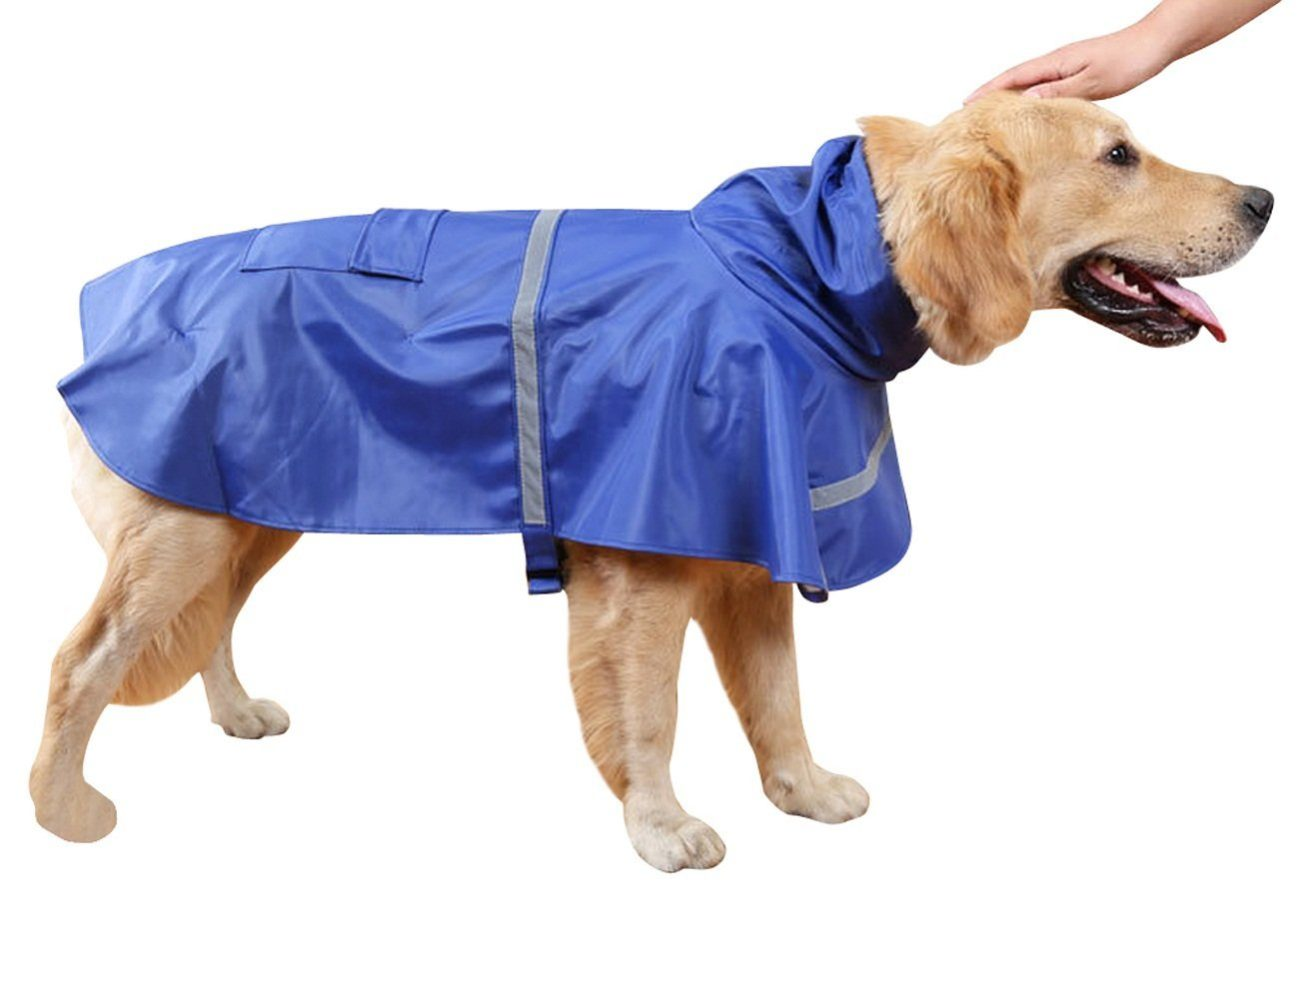 Dora Bridal Waterproof Dog Hooded Raincoat Adjustable Pet